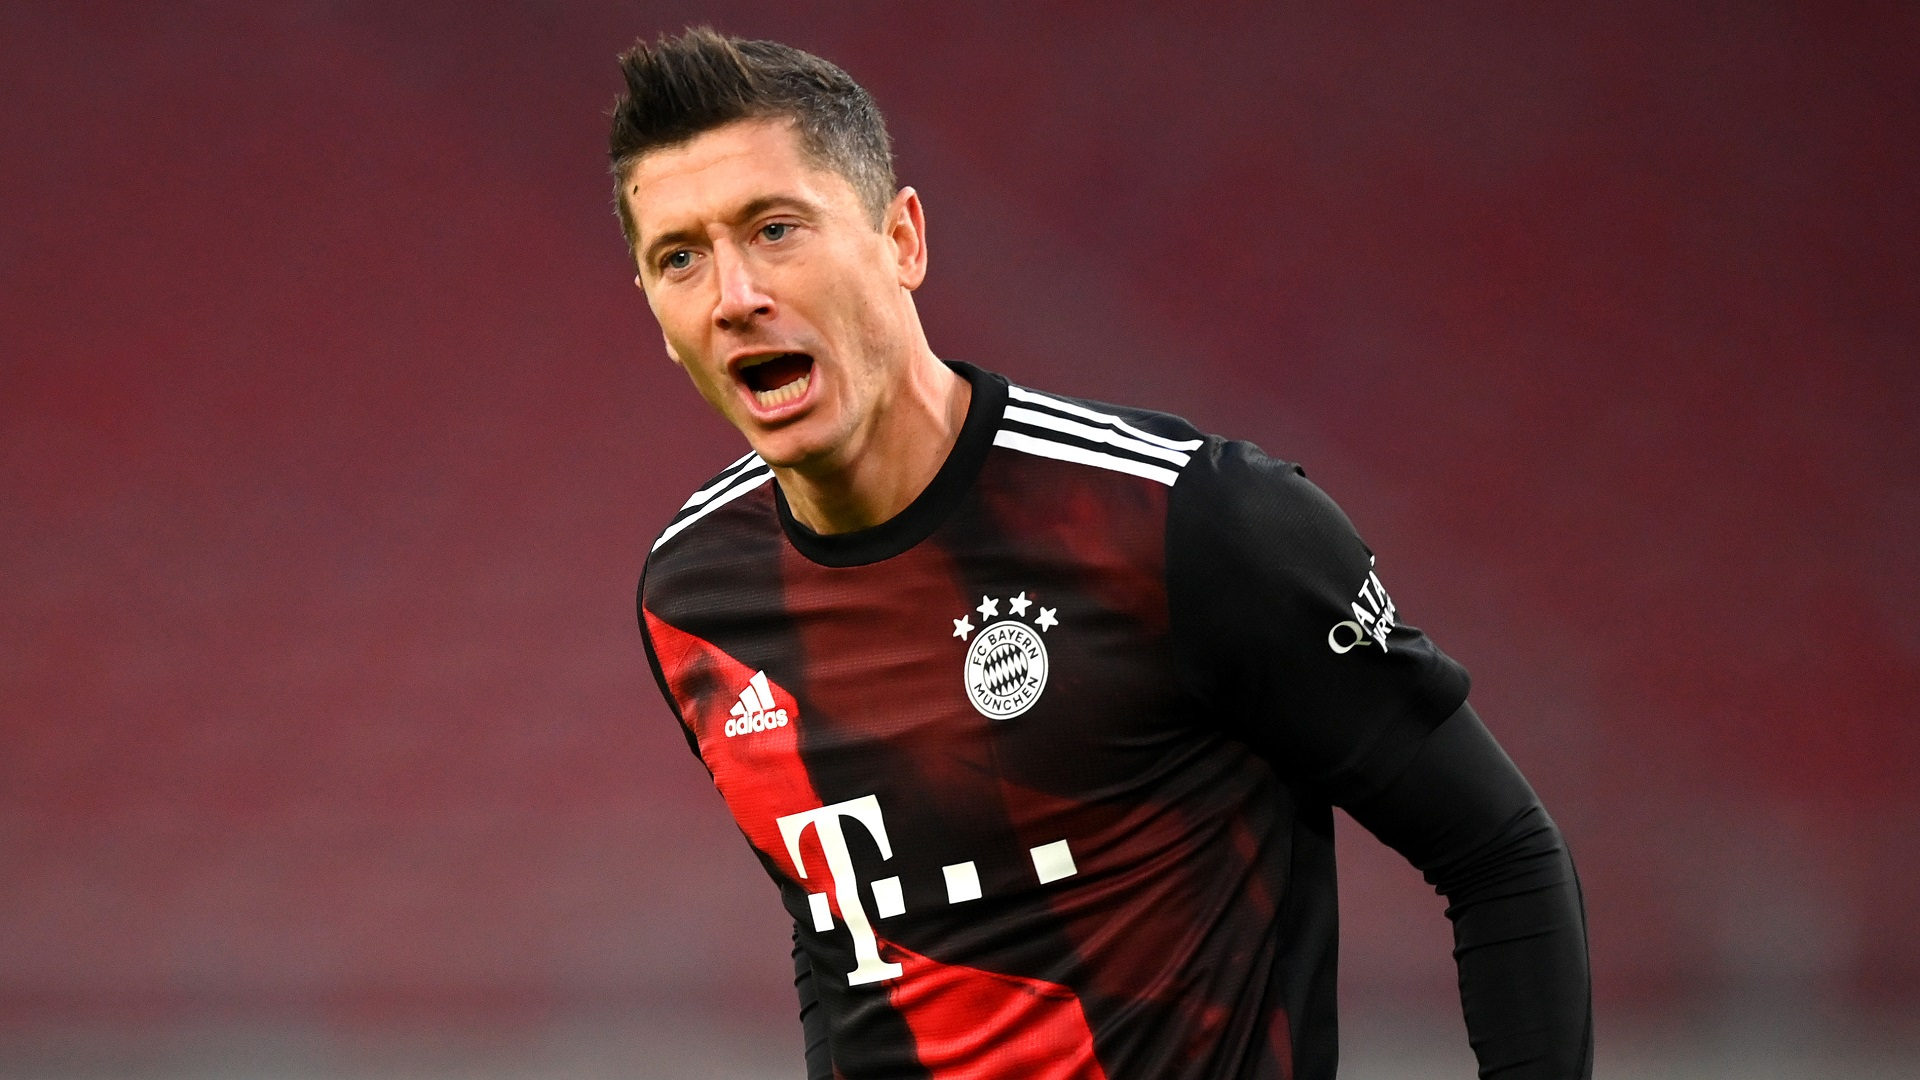 'I was ready' - Lewandowski admits he wanted to join Manchester United